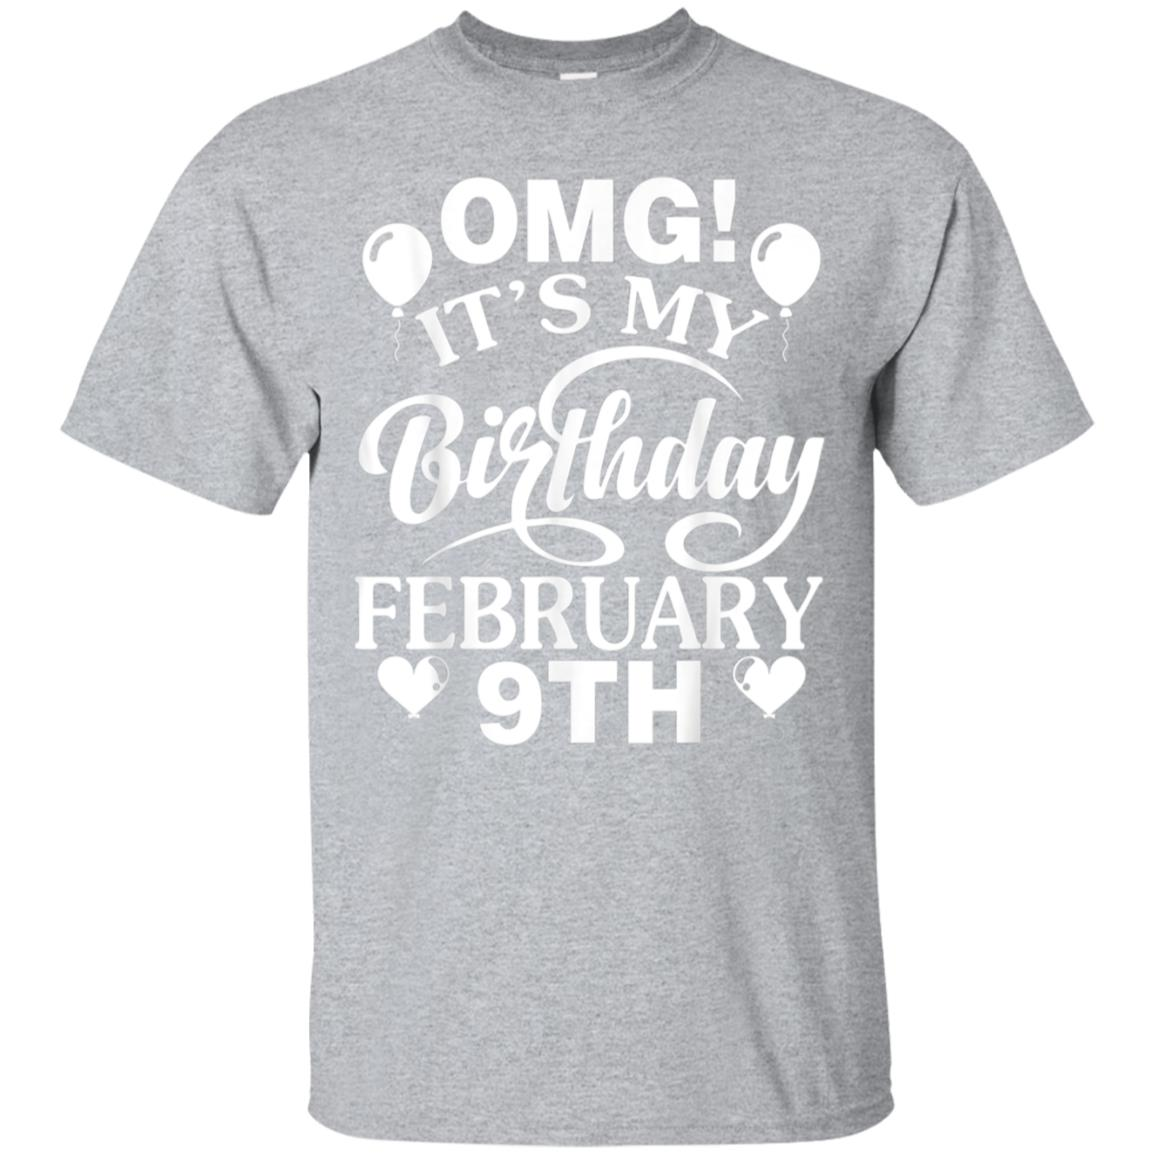 Heart Balloon OMG It's My Birthday February 9th Retro Shirt 99promocode